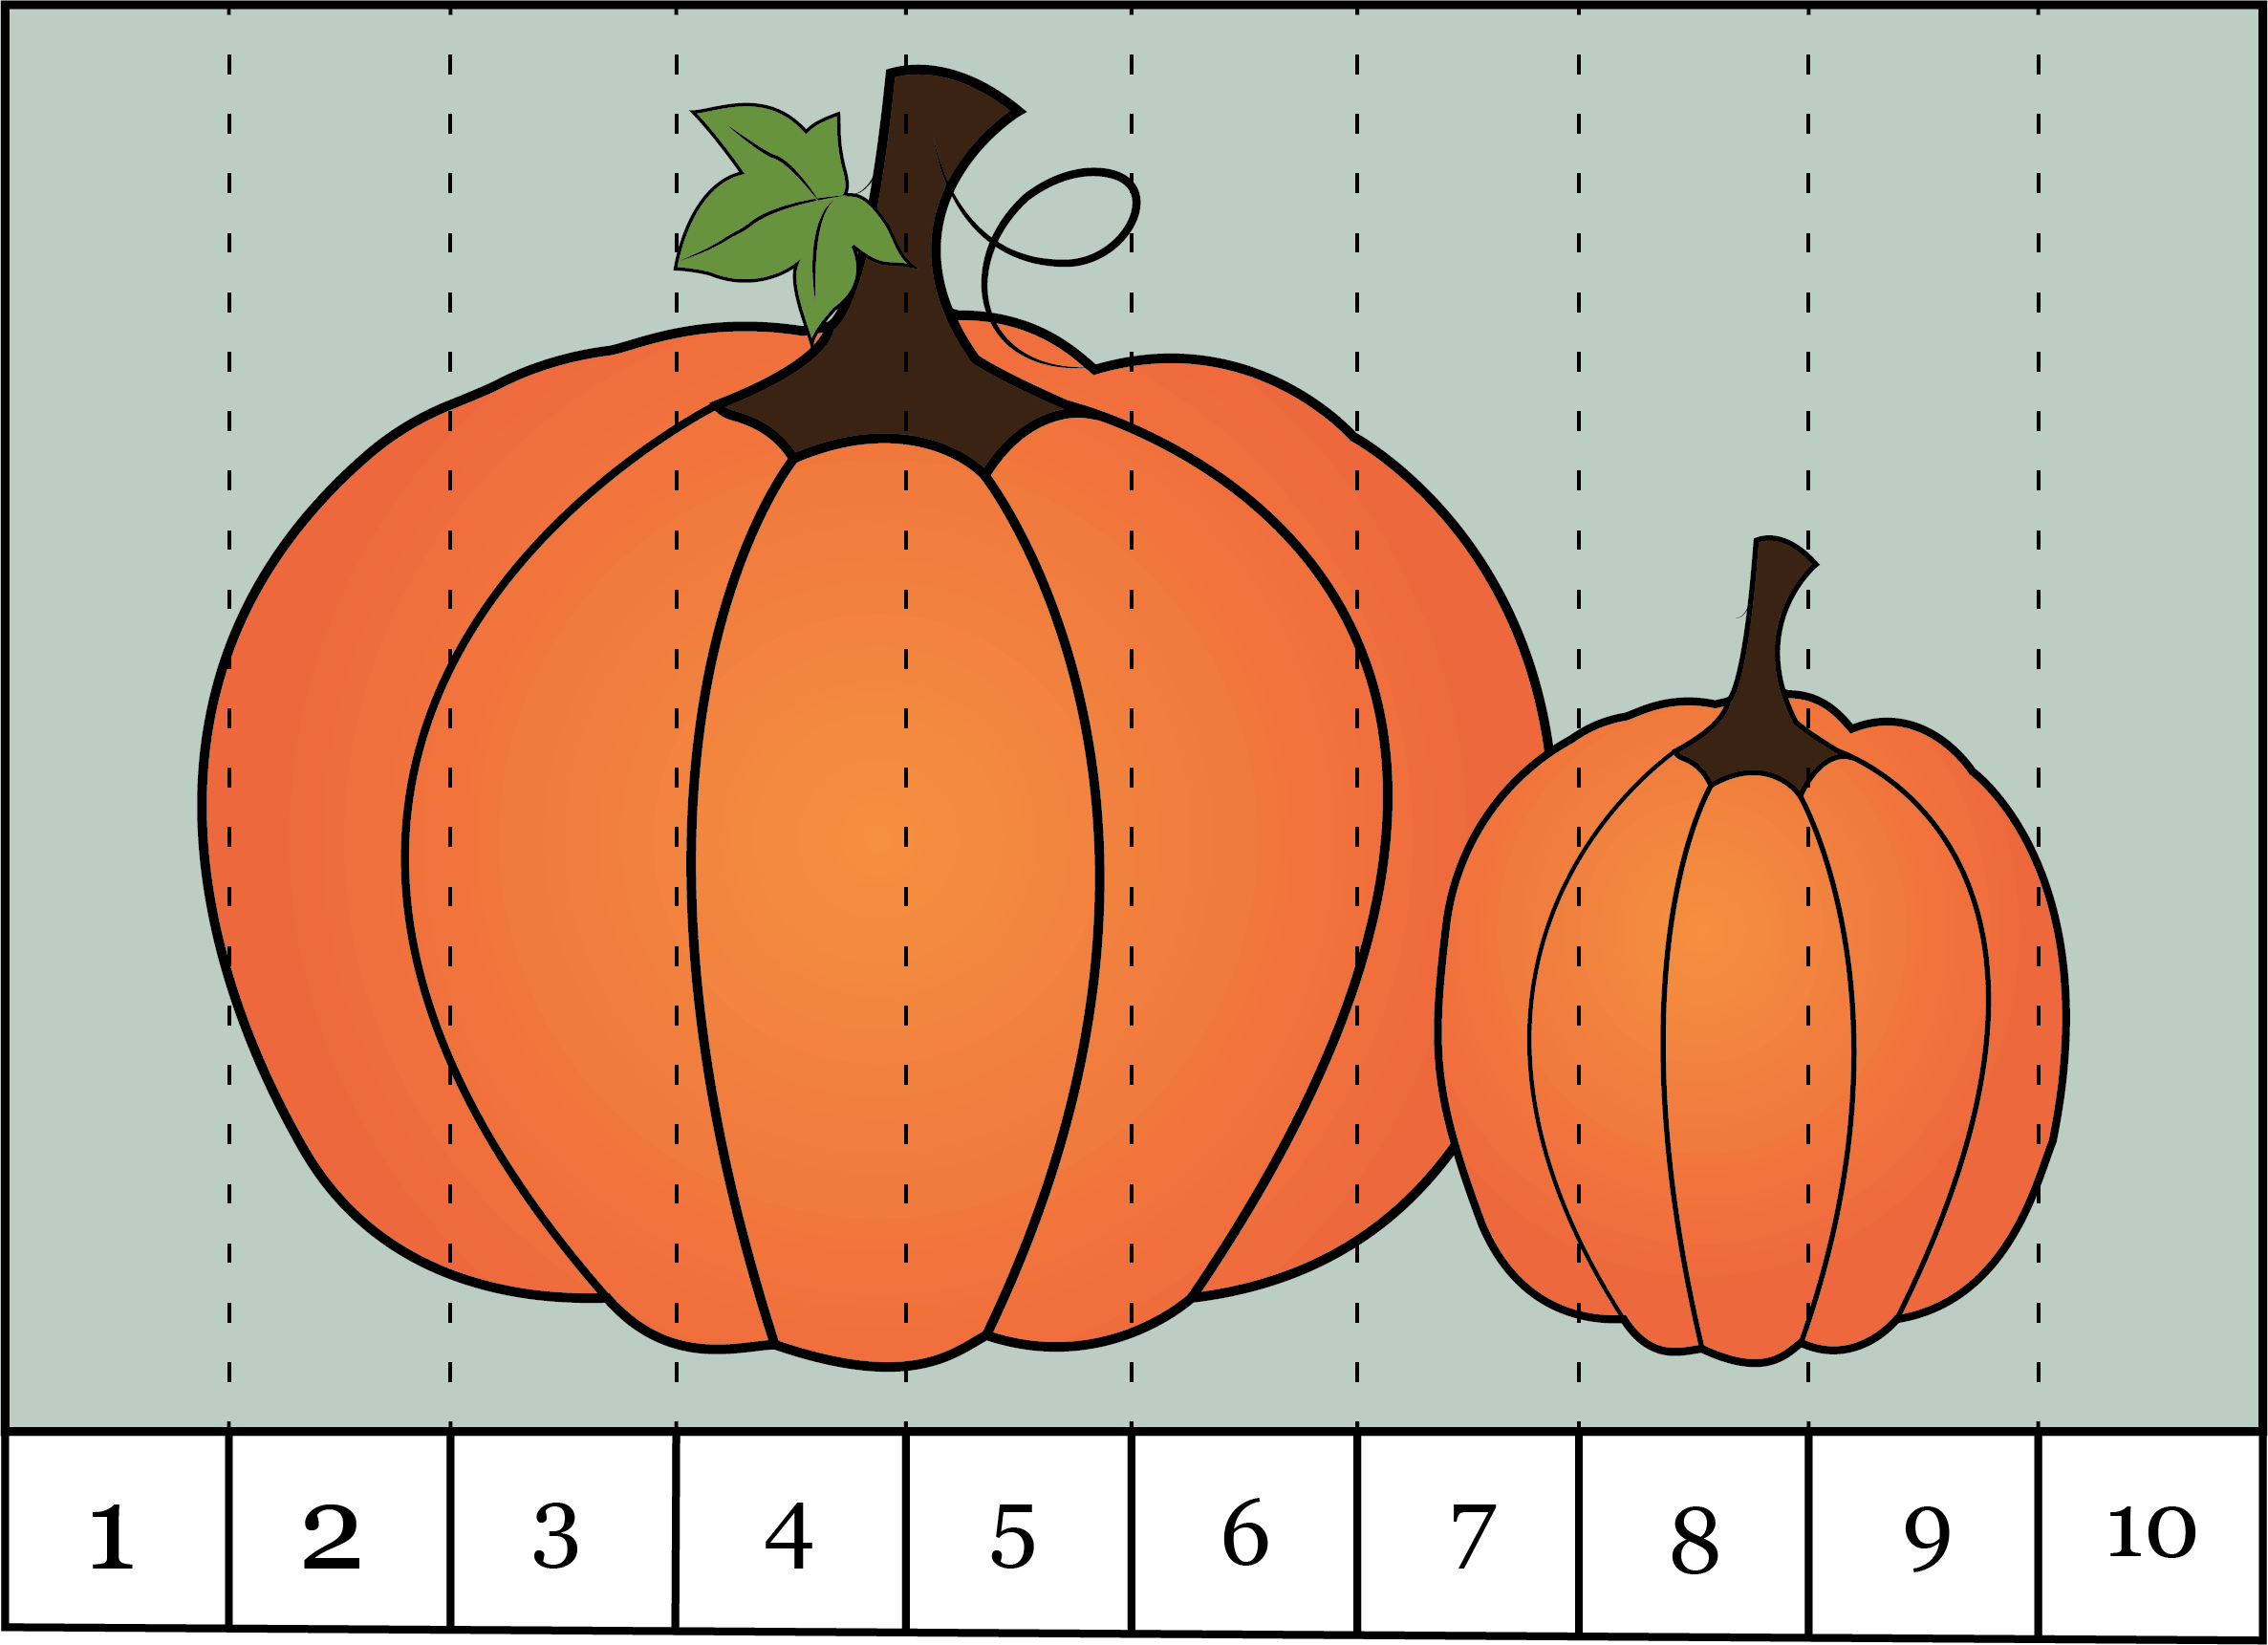 Number Order Puzzles To Practice Counting Skip Counting